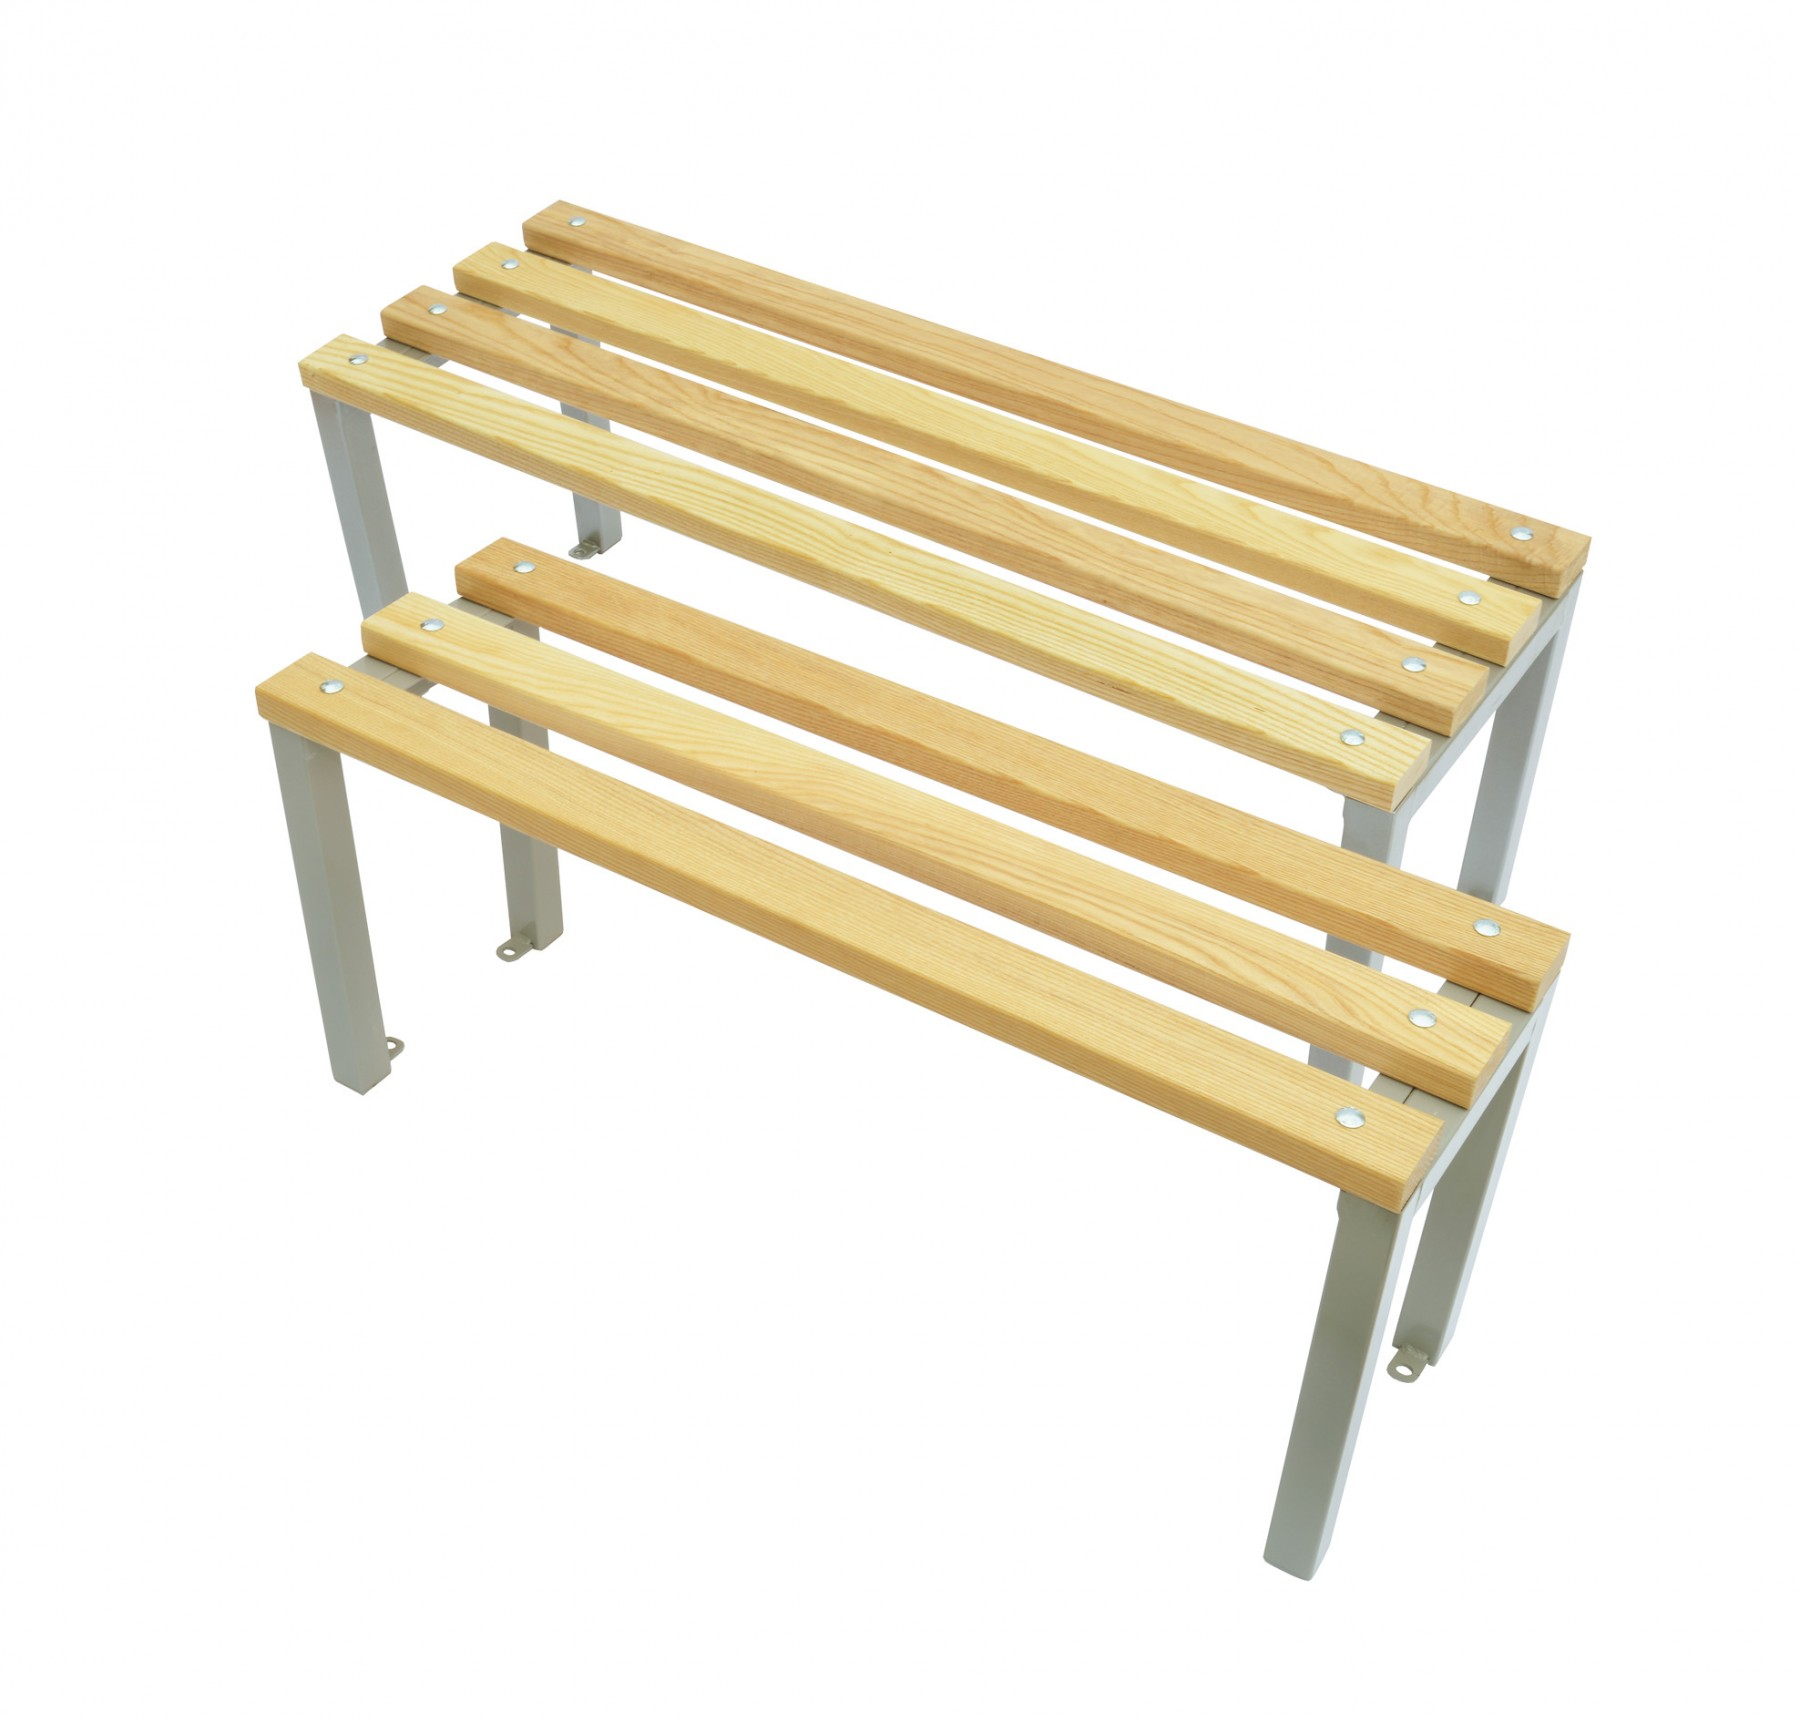 Wooden Cloakroom Bench